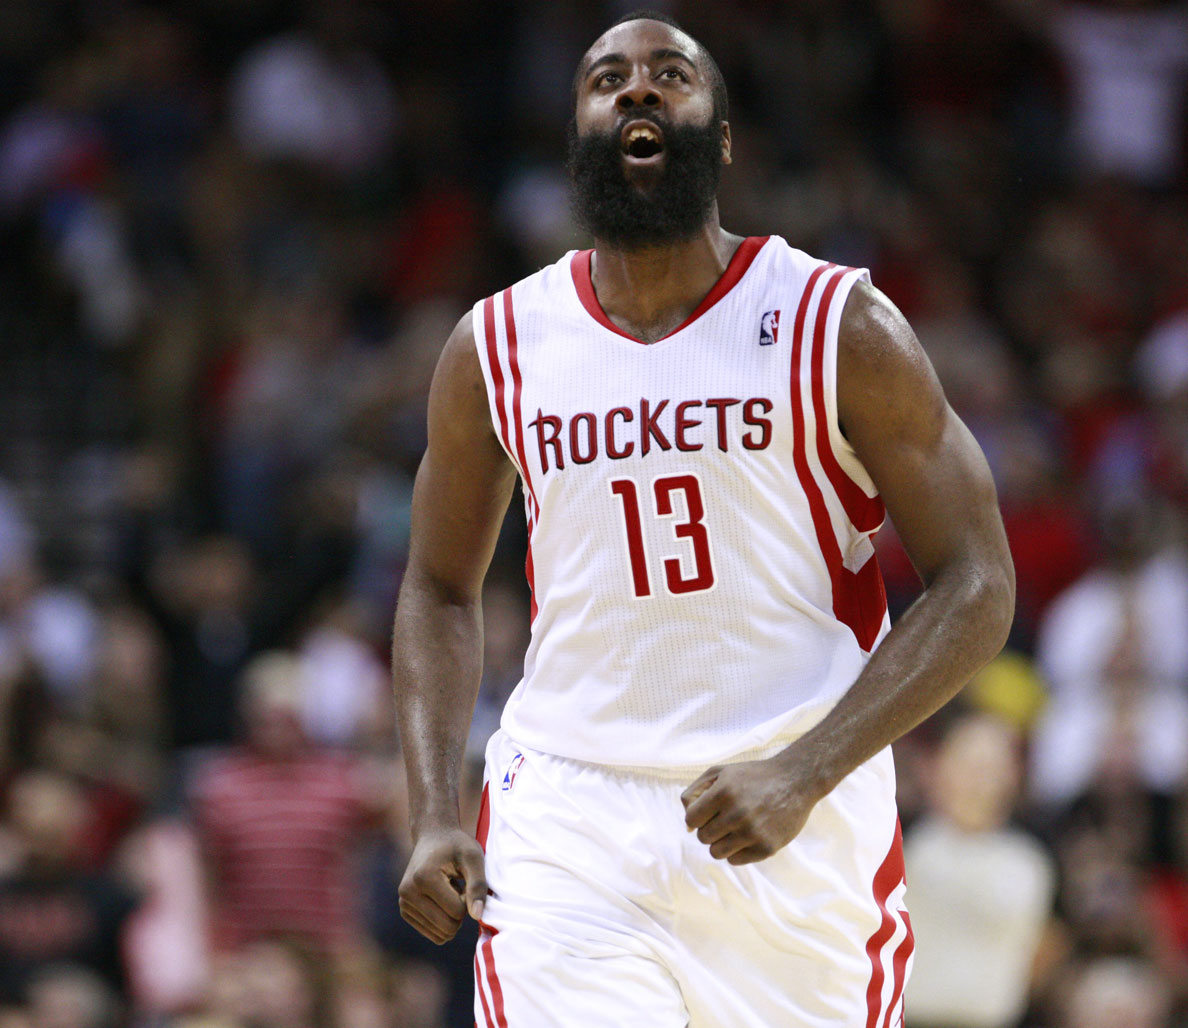 James Harden Yearly Stats: PFTW: James Harden